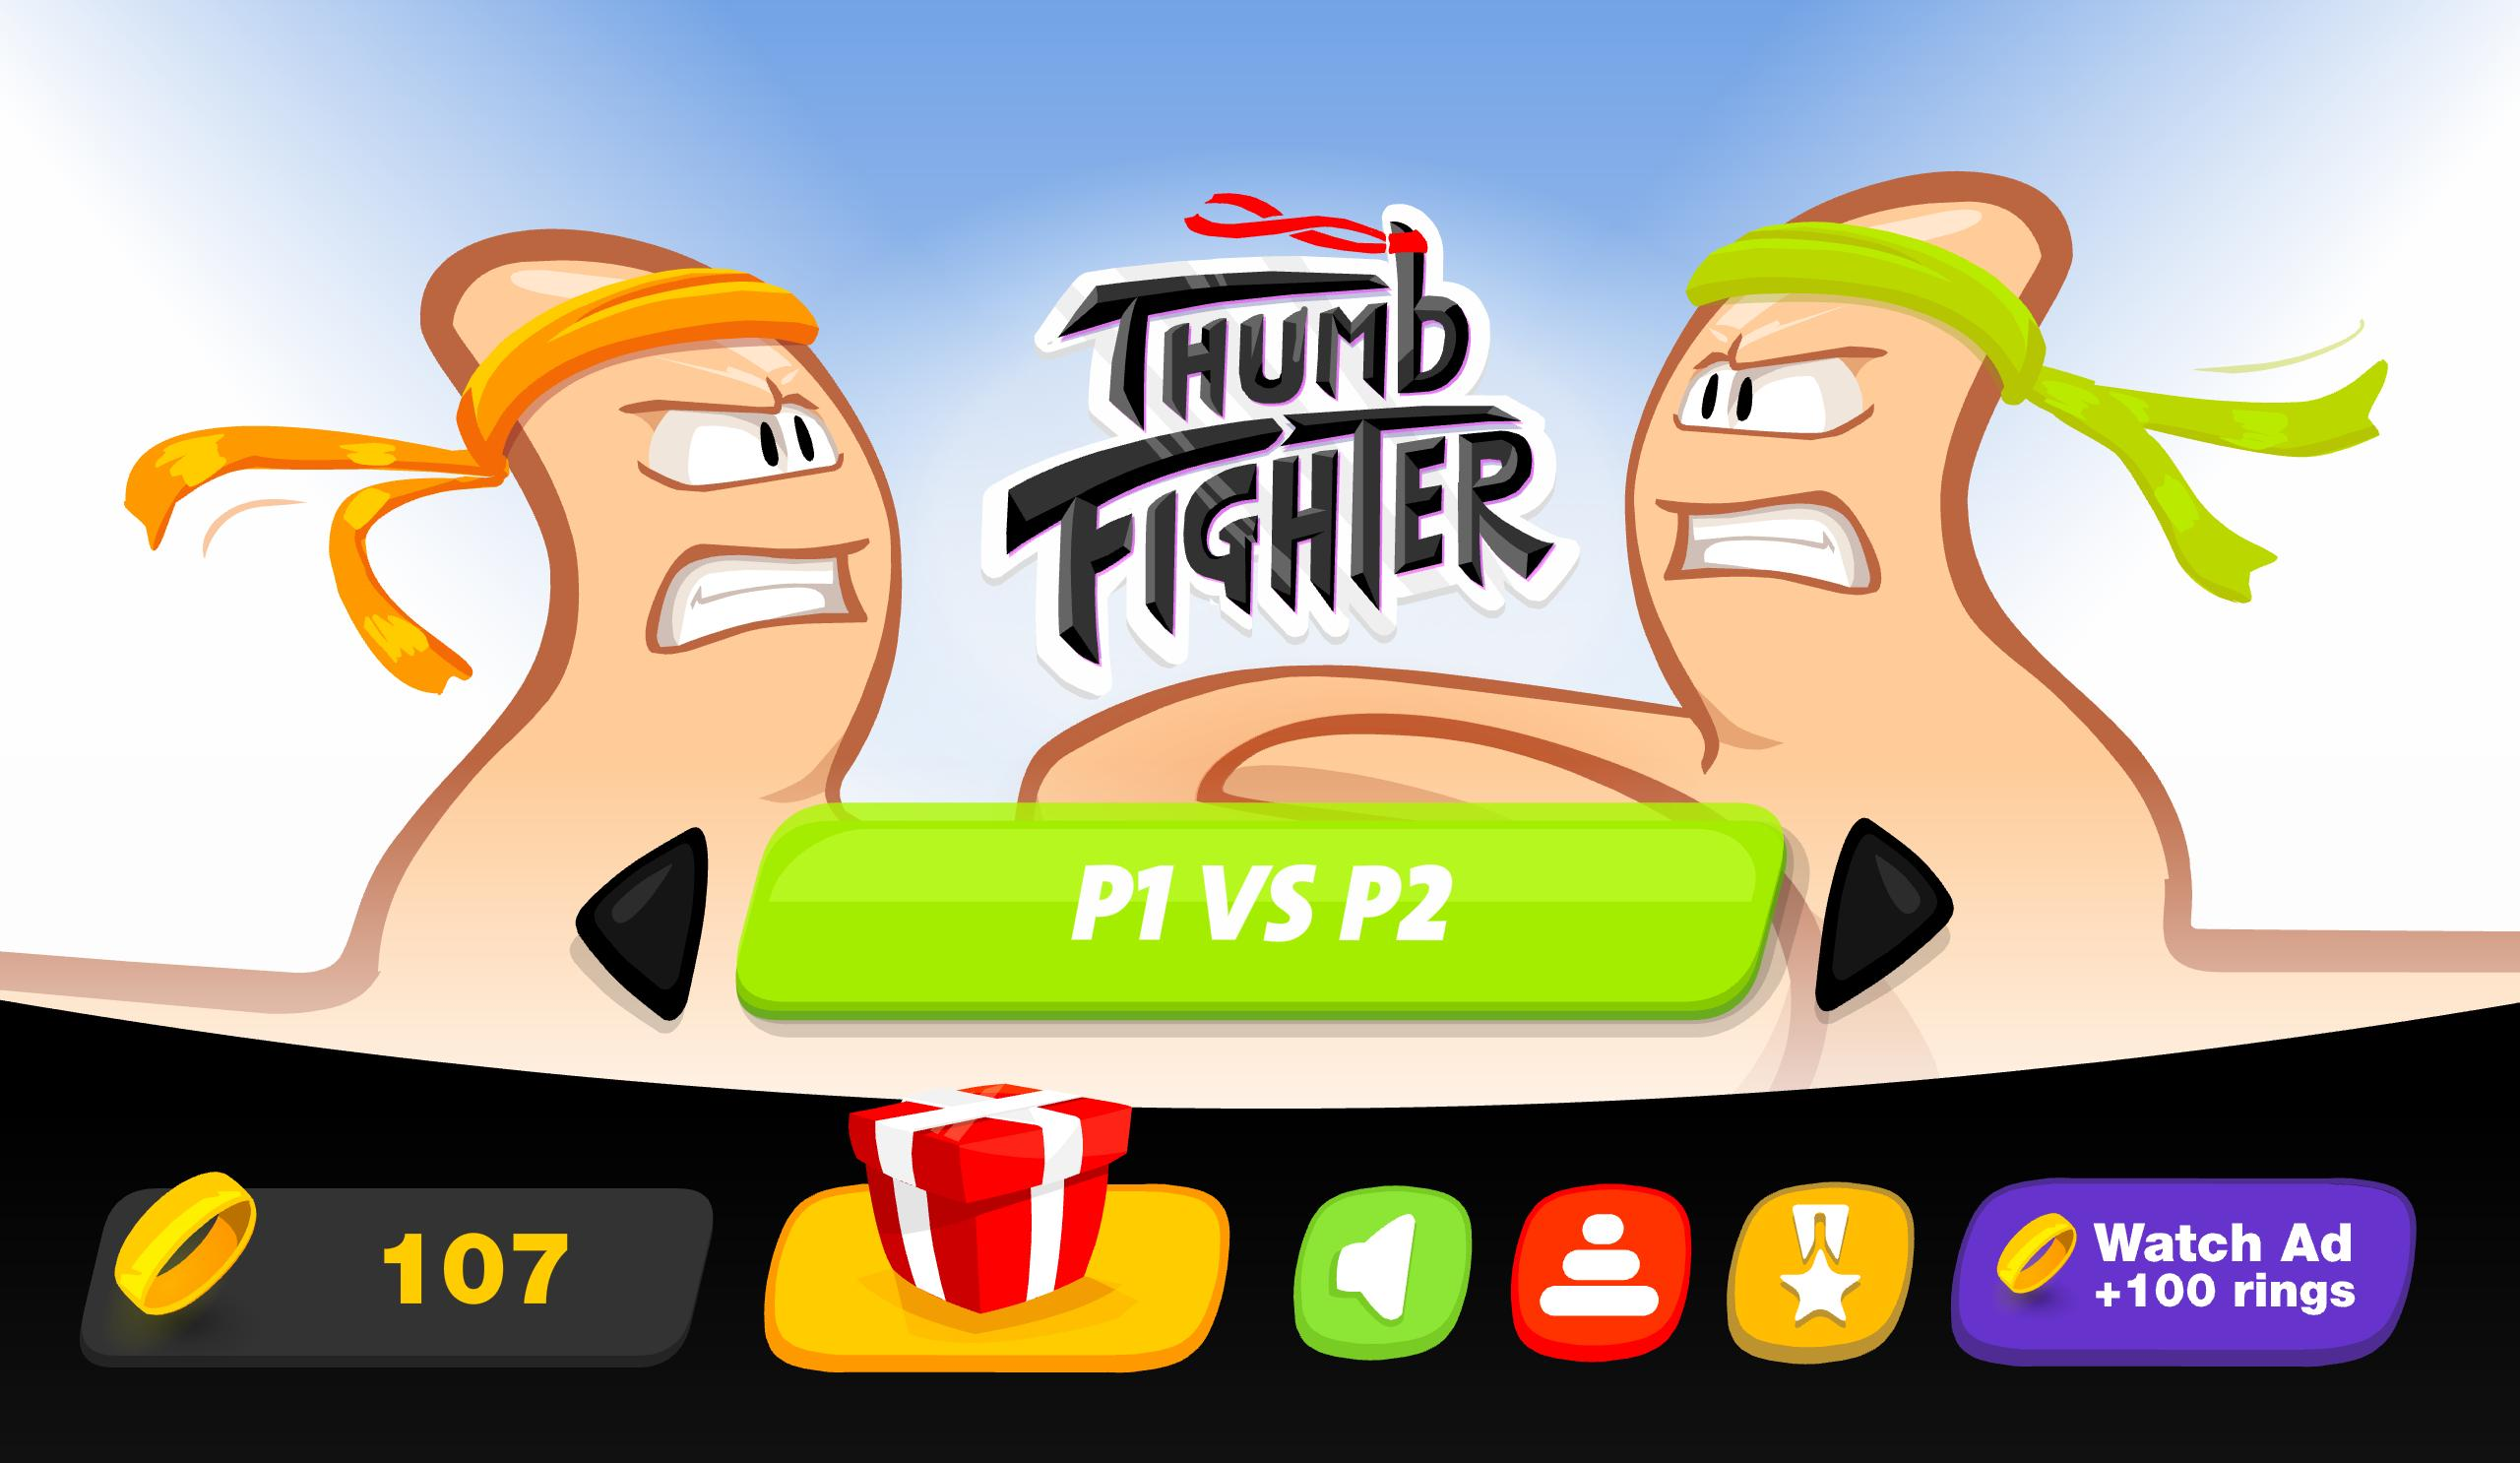 Thumb Fighter 👍 1.4.053 Screenshot 1